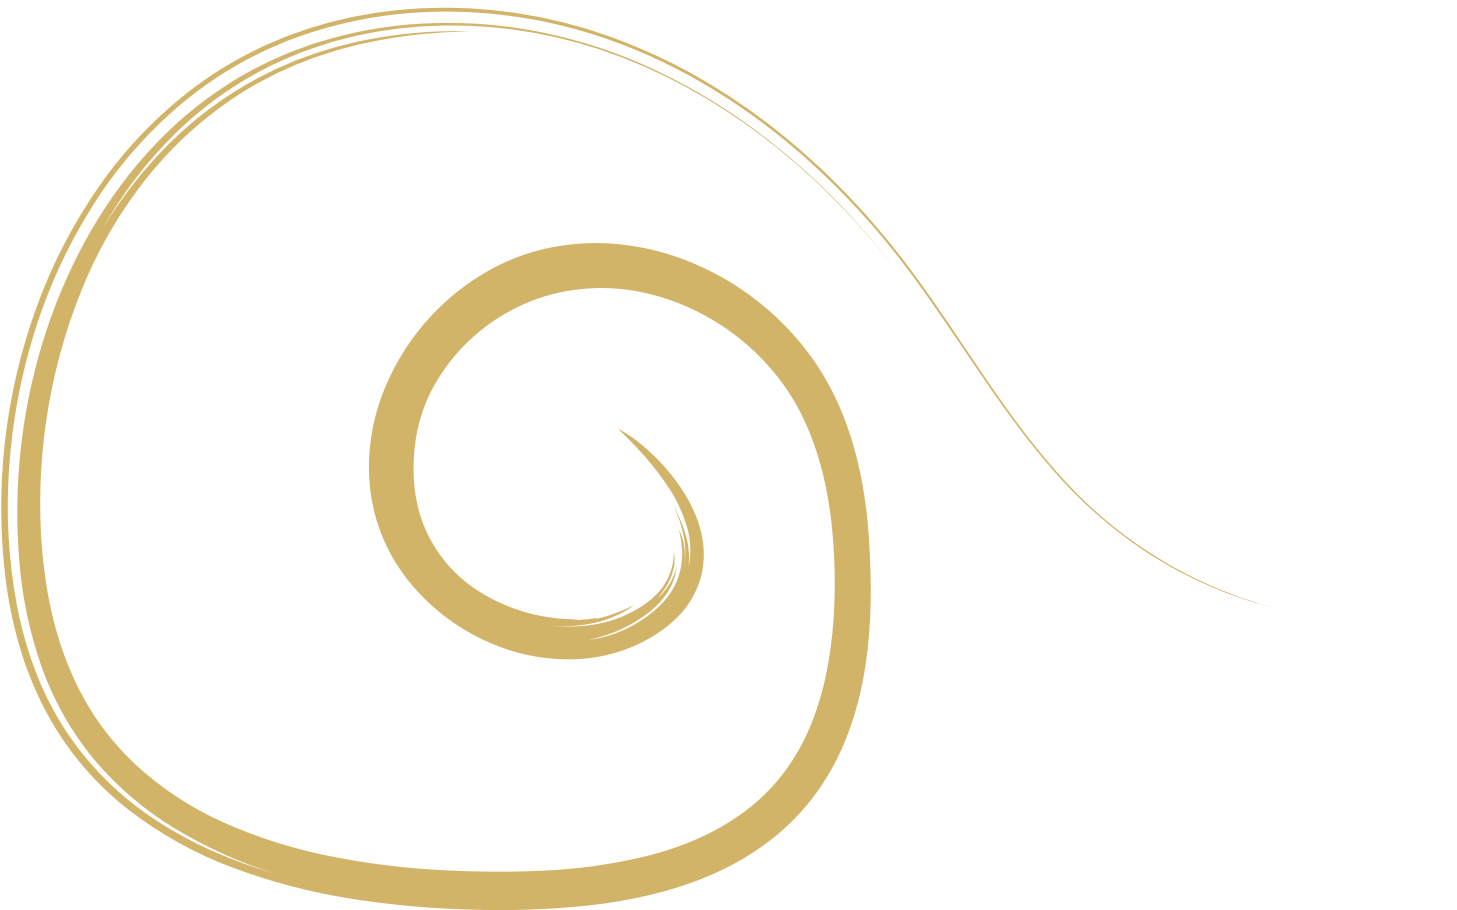 style tk gold snail Vector images in PNG and SVG   Icons8 Illustrations